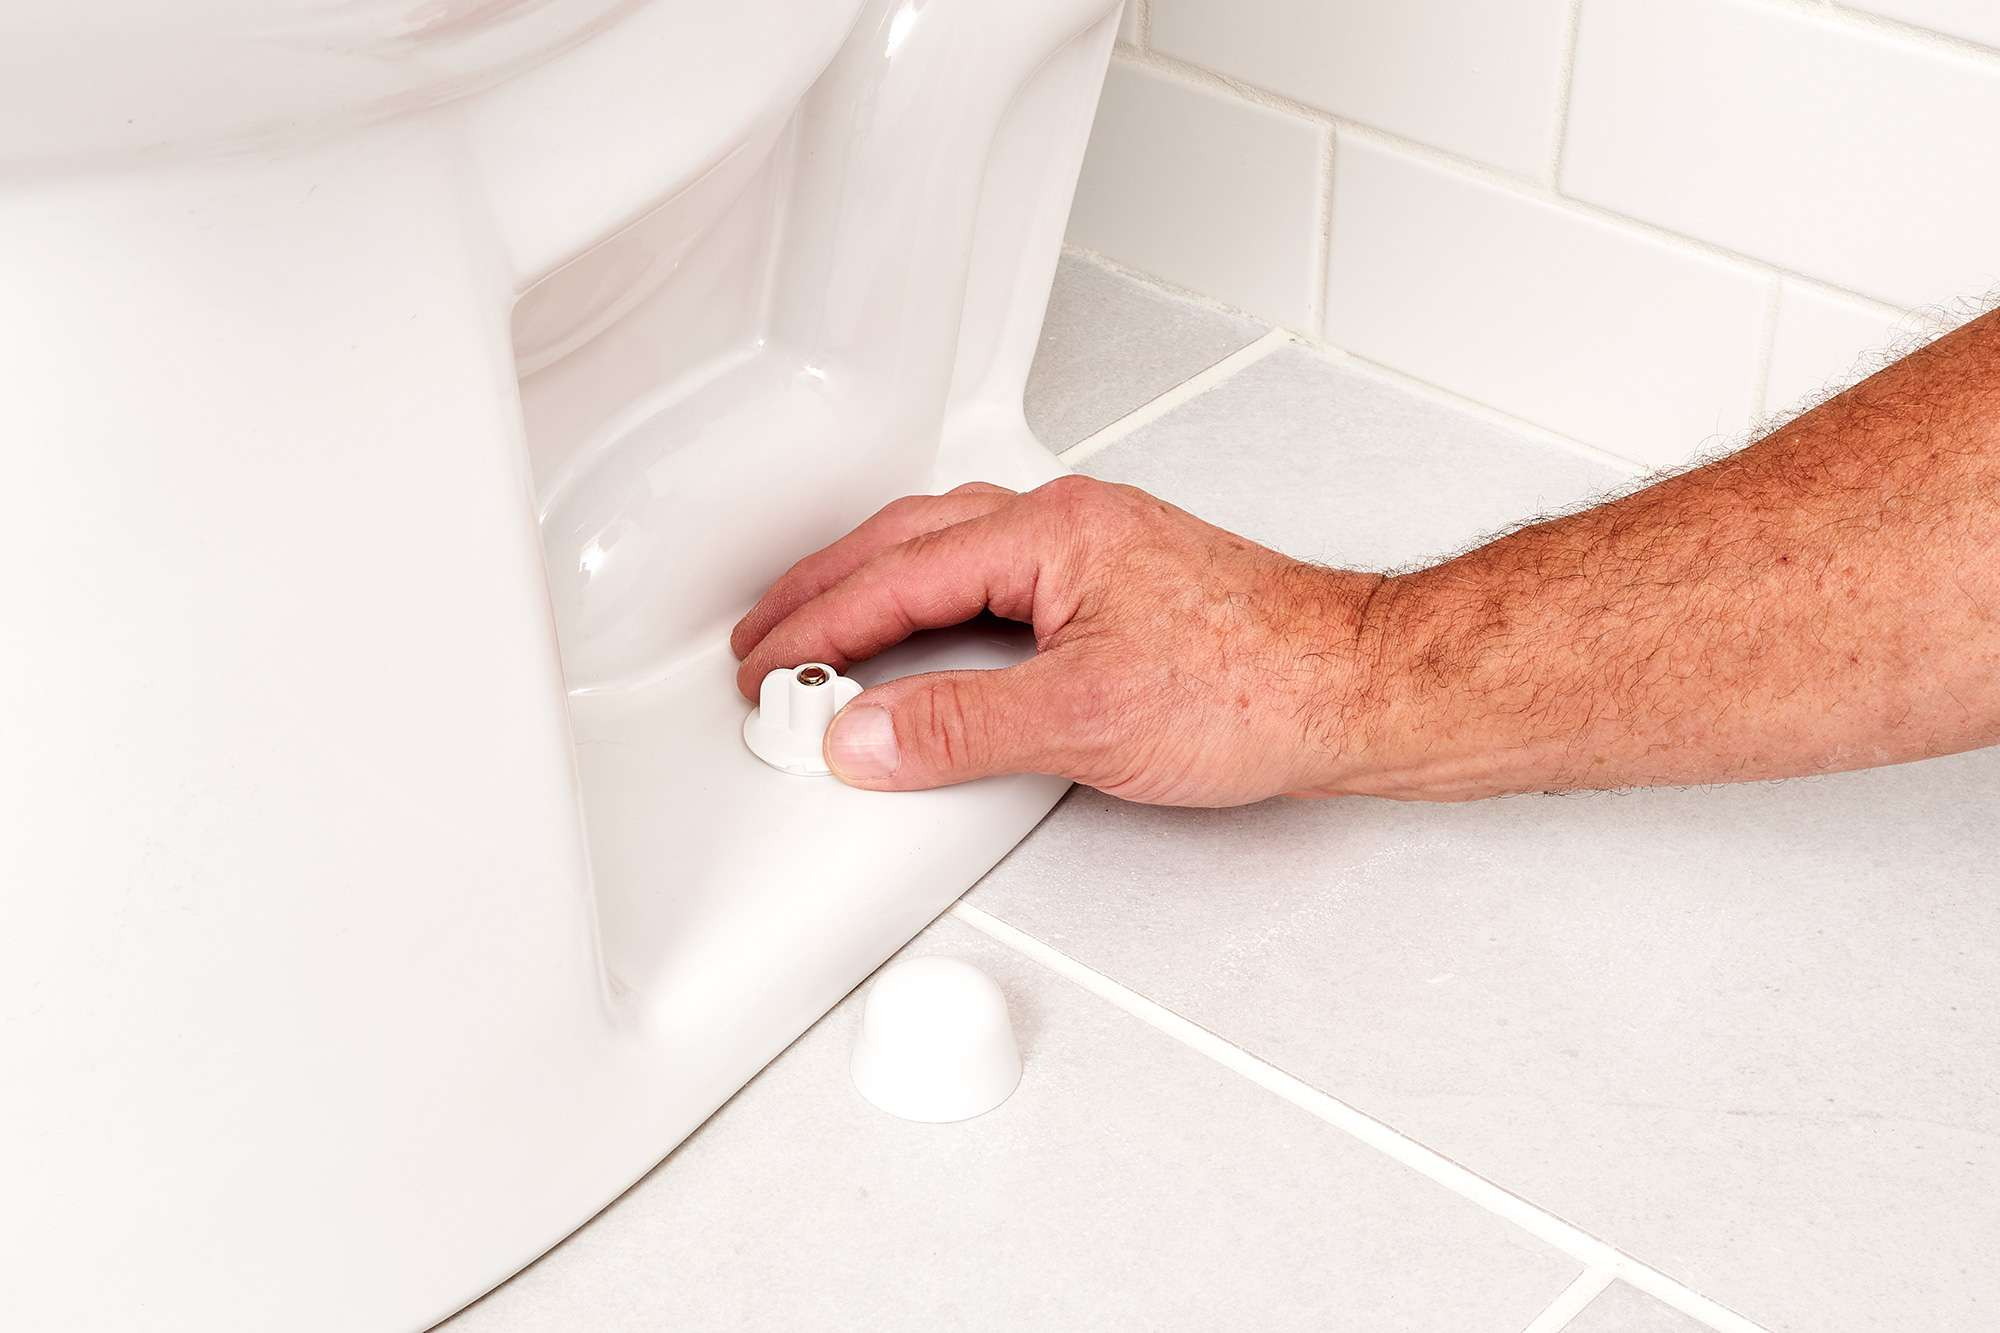 Toilet fittings being check at bottom